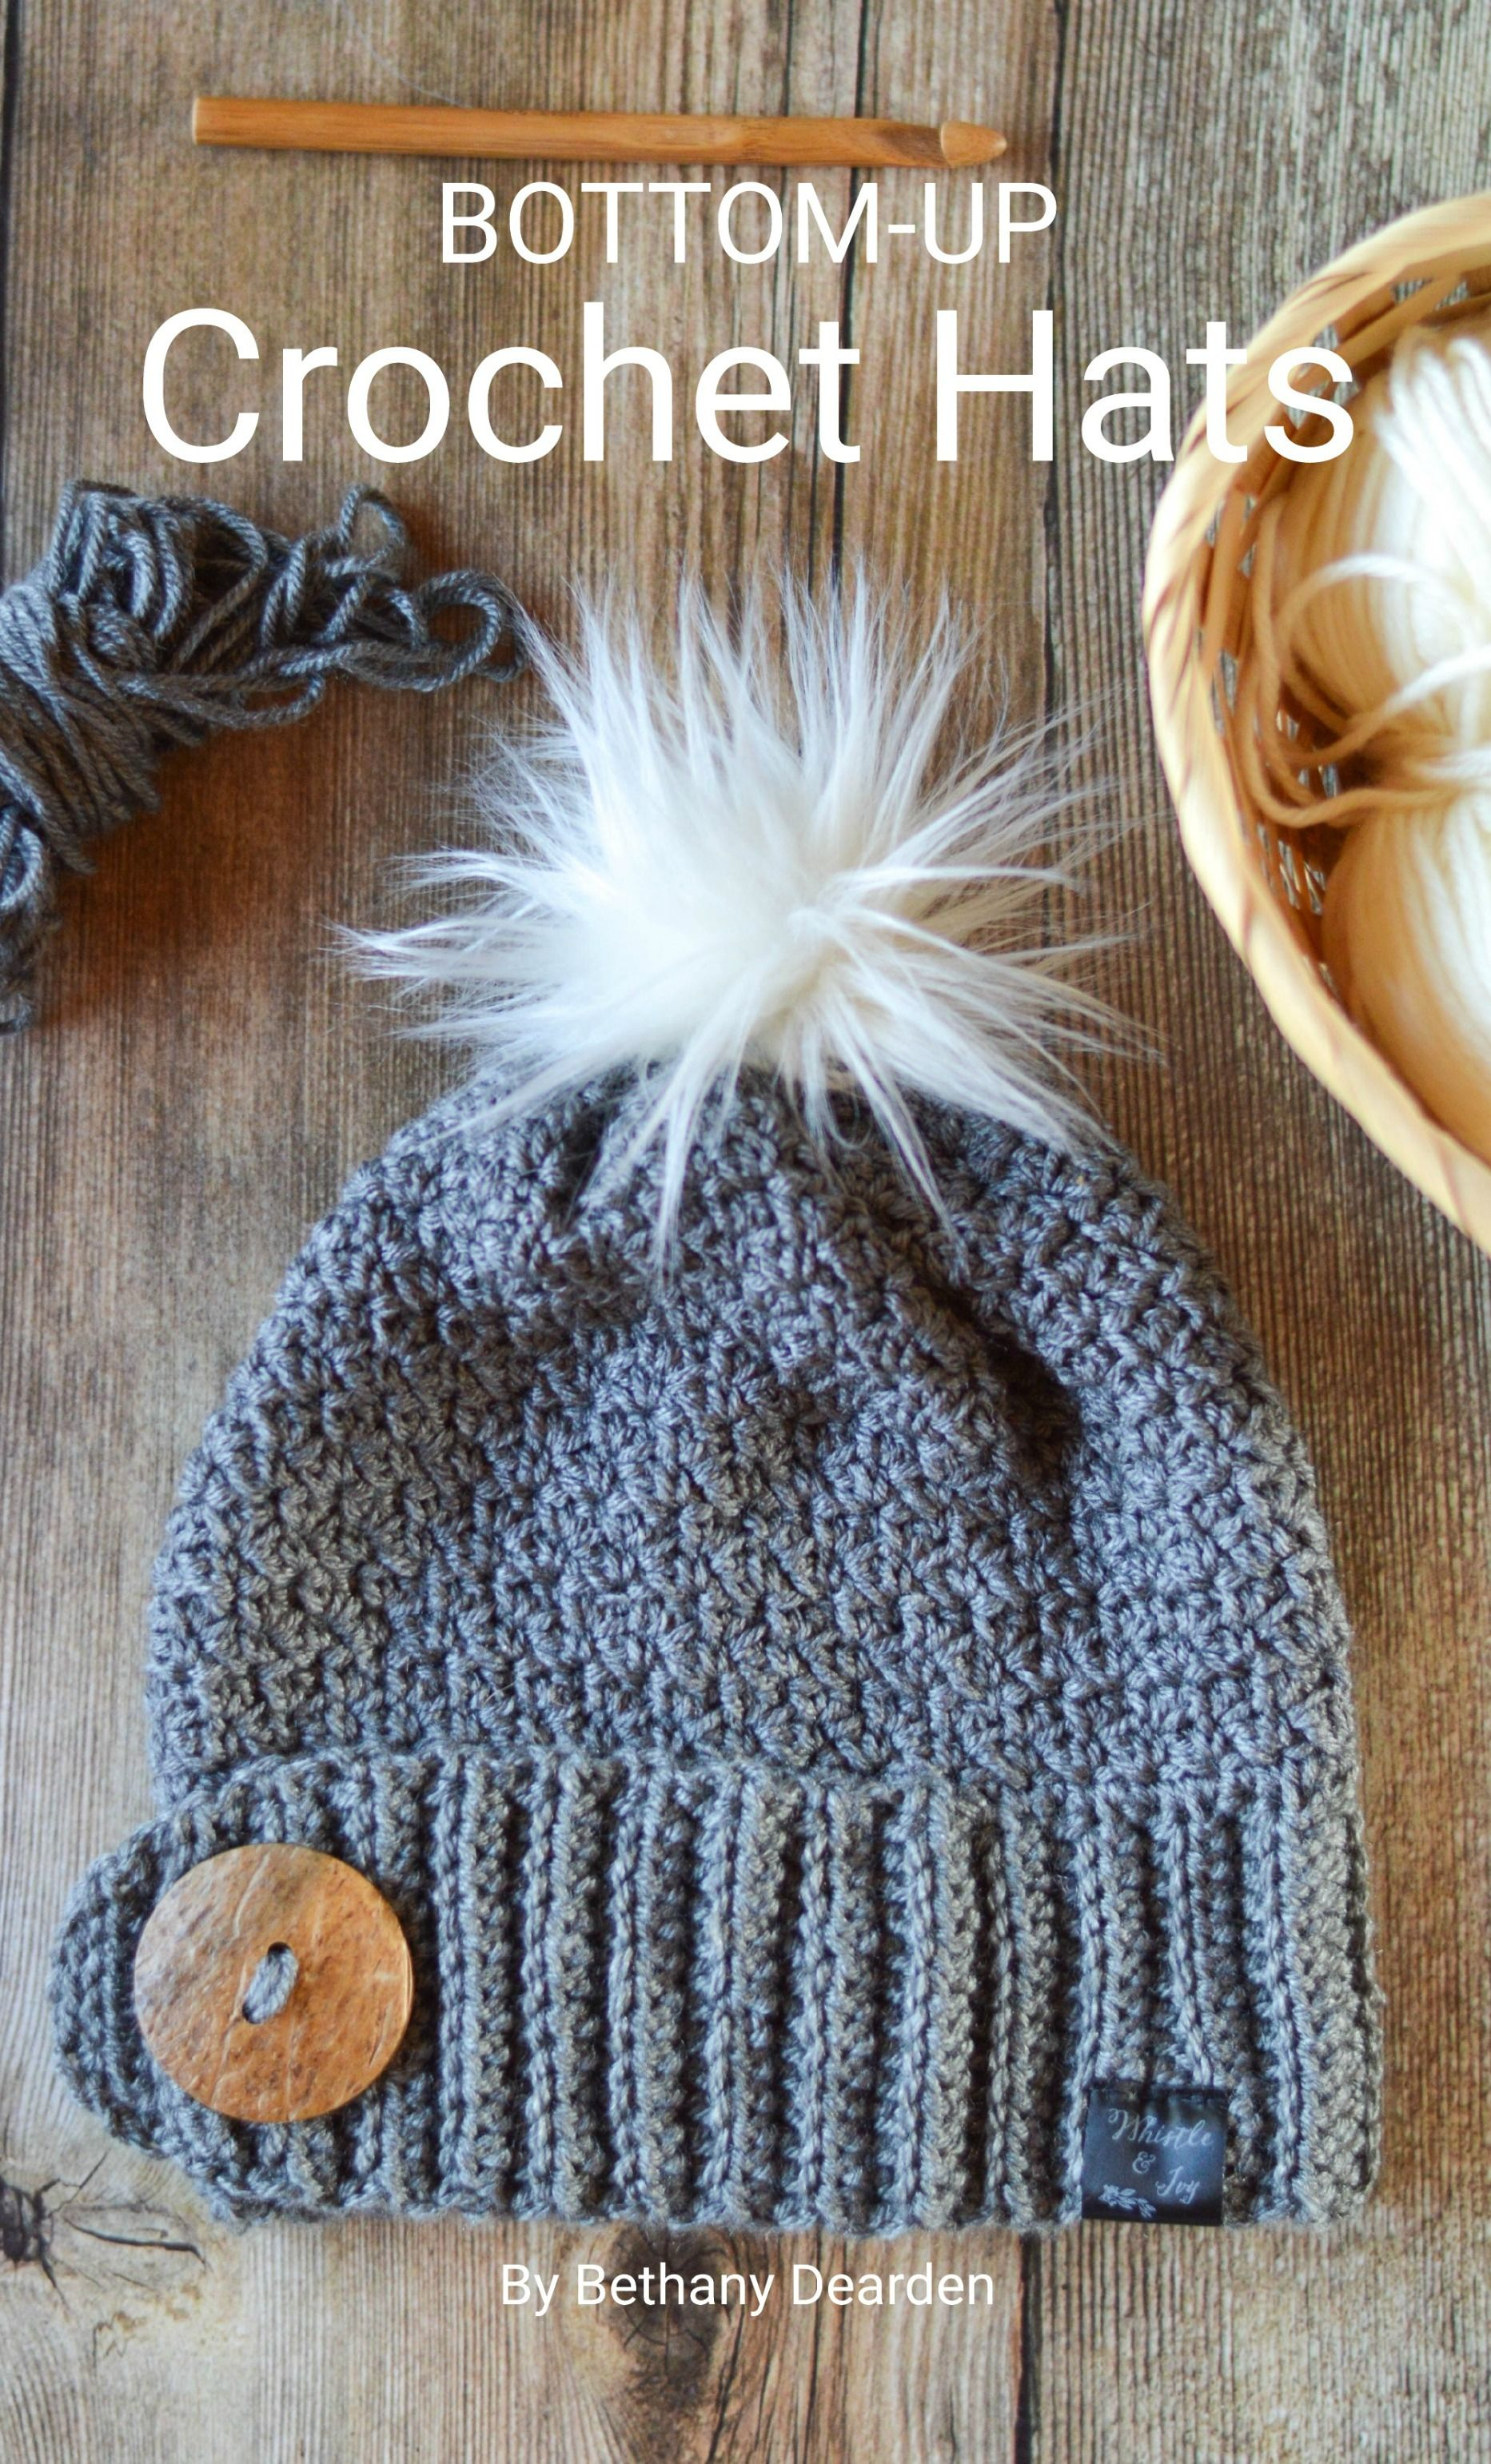 ac27530489f5e Button Eskimo Baby Hat - This cozy hat is a cute and fun baby accessory for